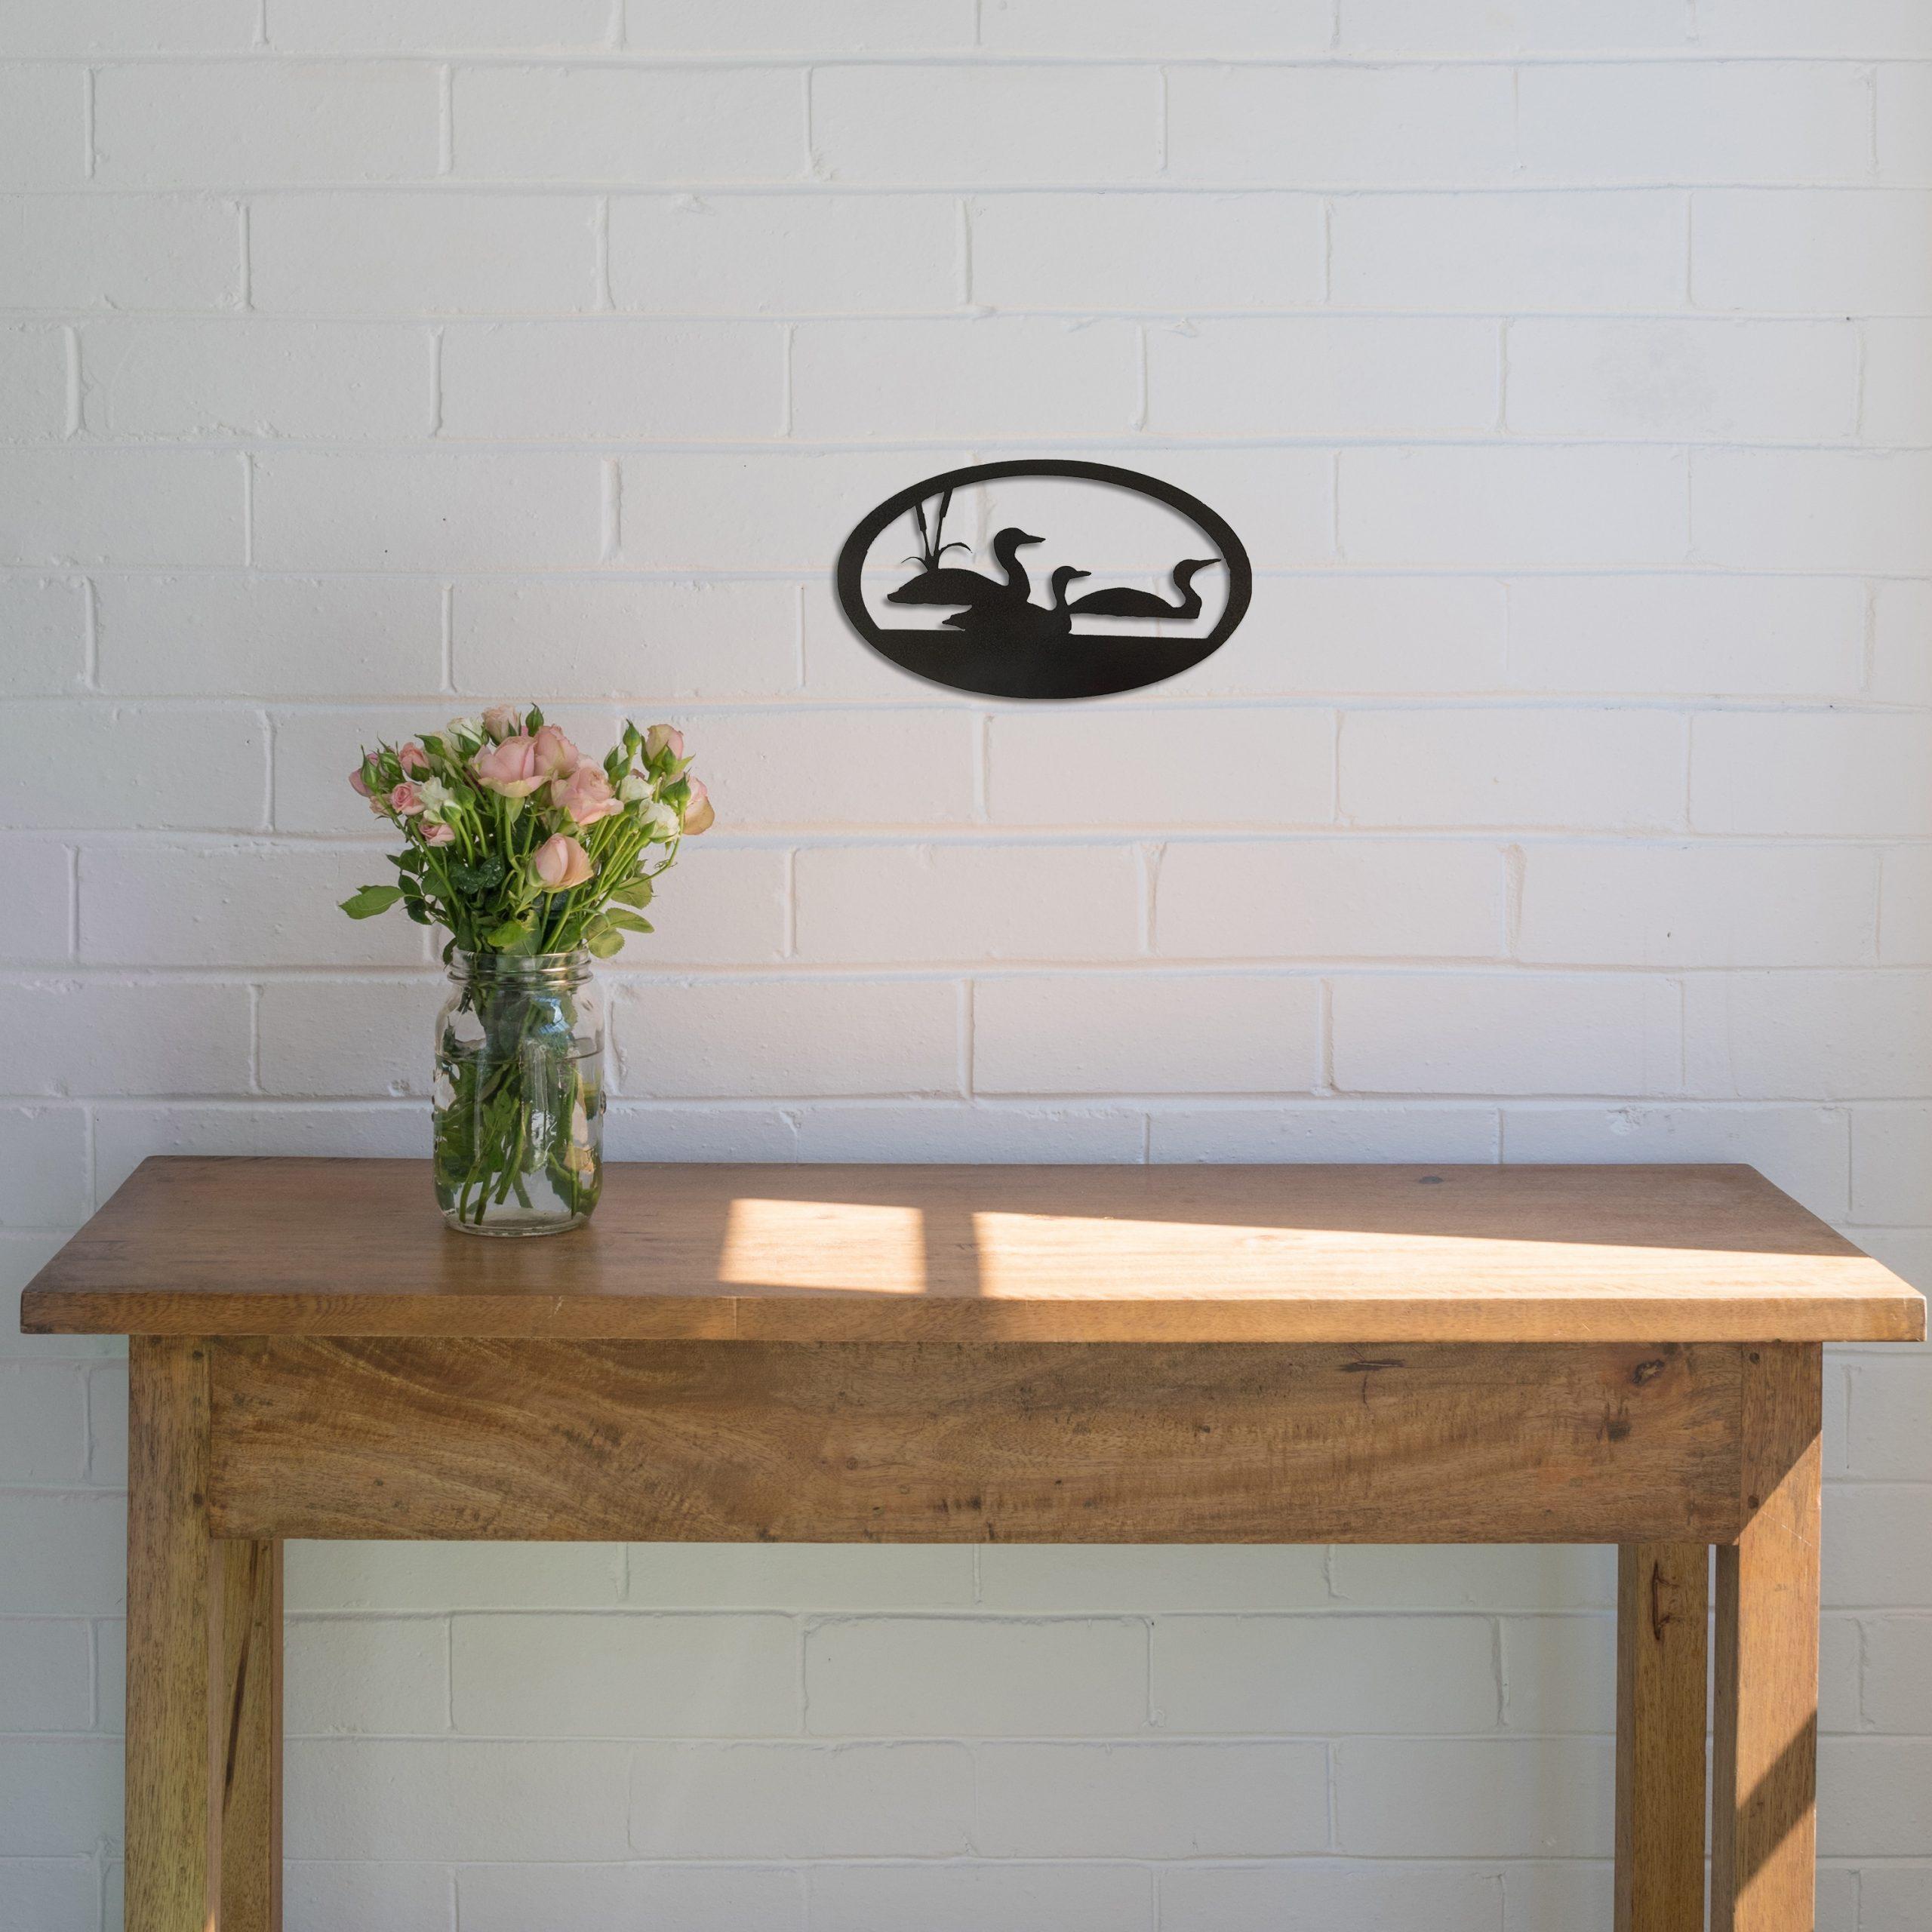 black-loon-oval-over-table-scaled